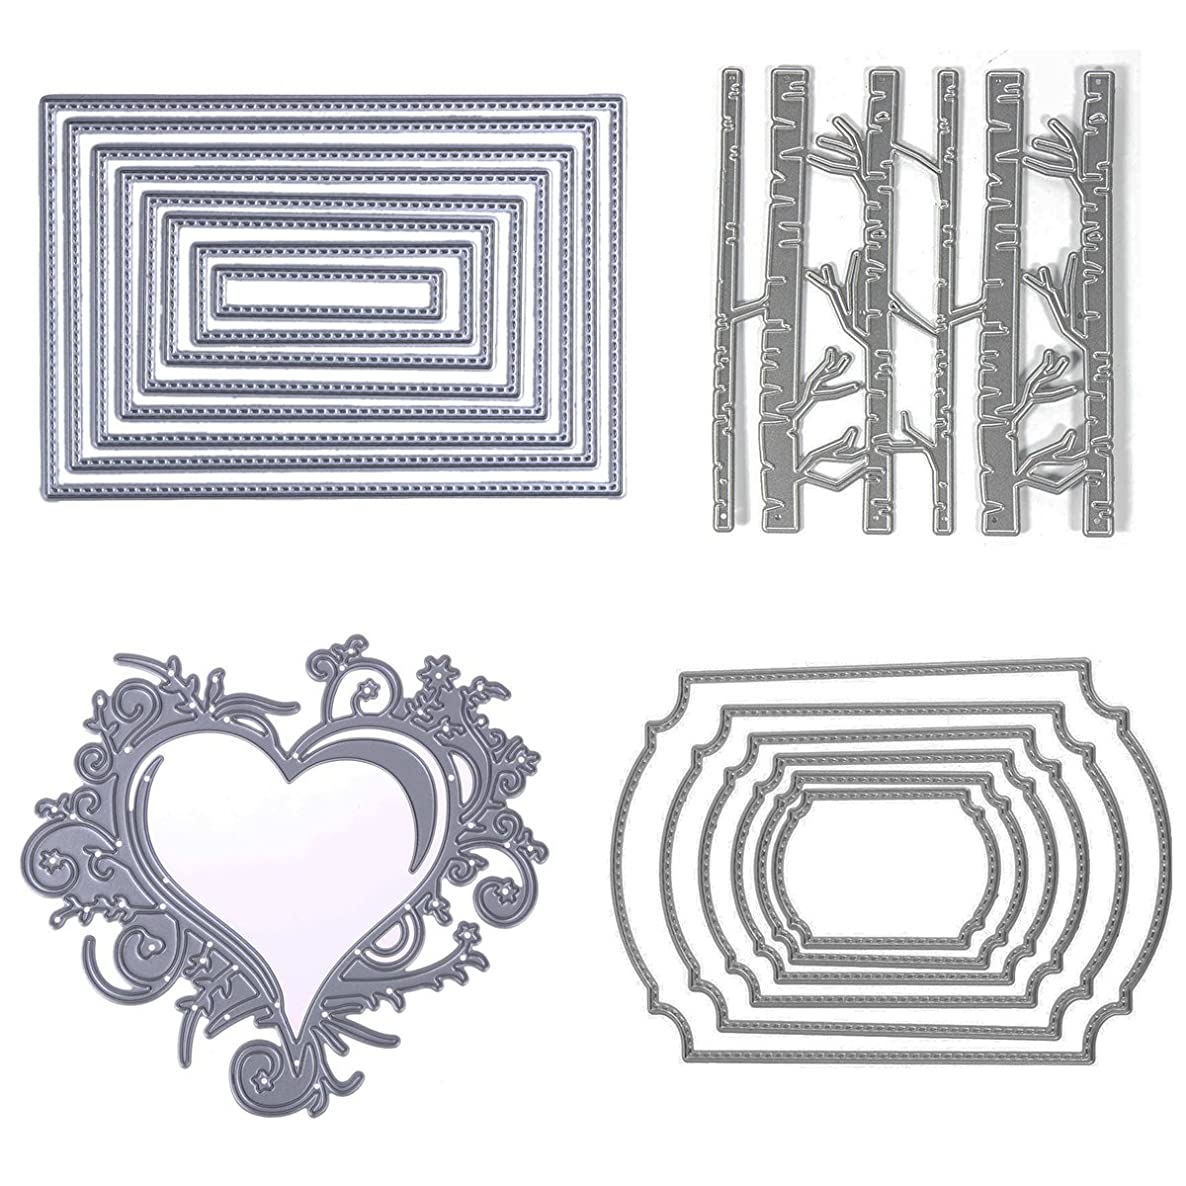 Cutting Dies Cut Scrapbooking for Card Making Nesting Stitched Branches Rectangle Love Heart Bamboo Wavy Square Metal Stencils for DIY Embossing Photo Album Decorative DIY Paper Cards 4set (Set 9)